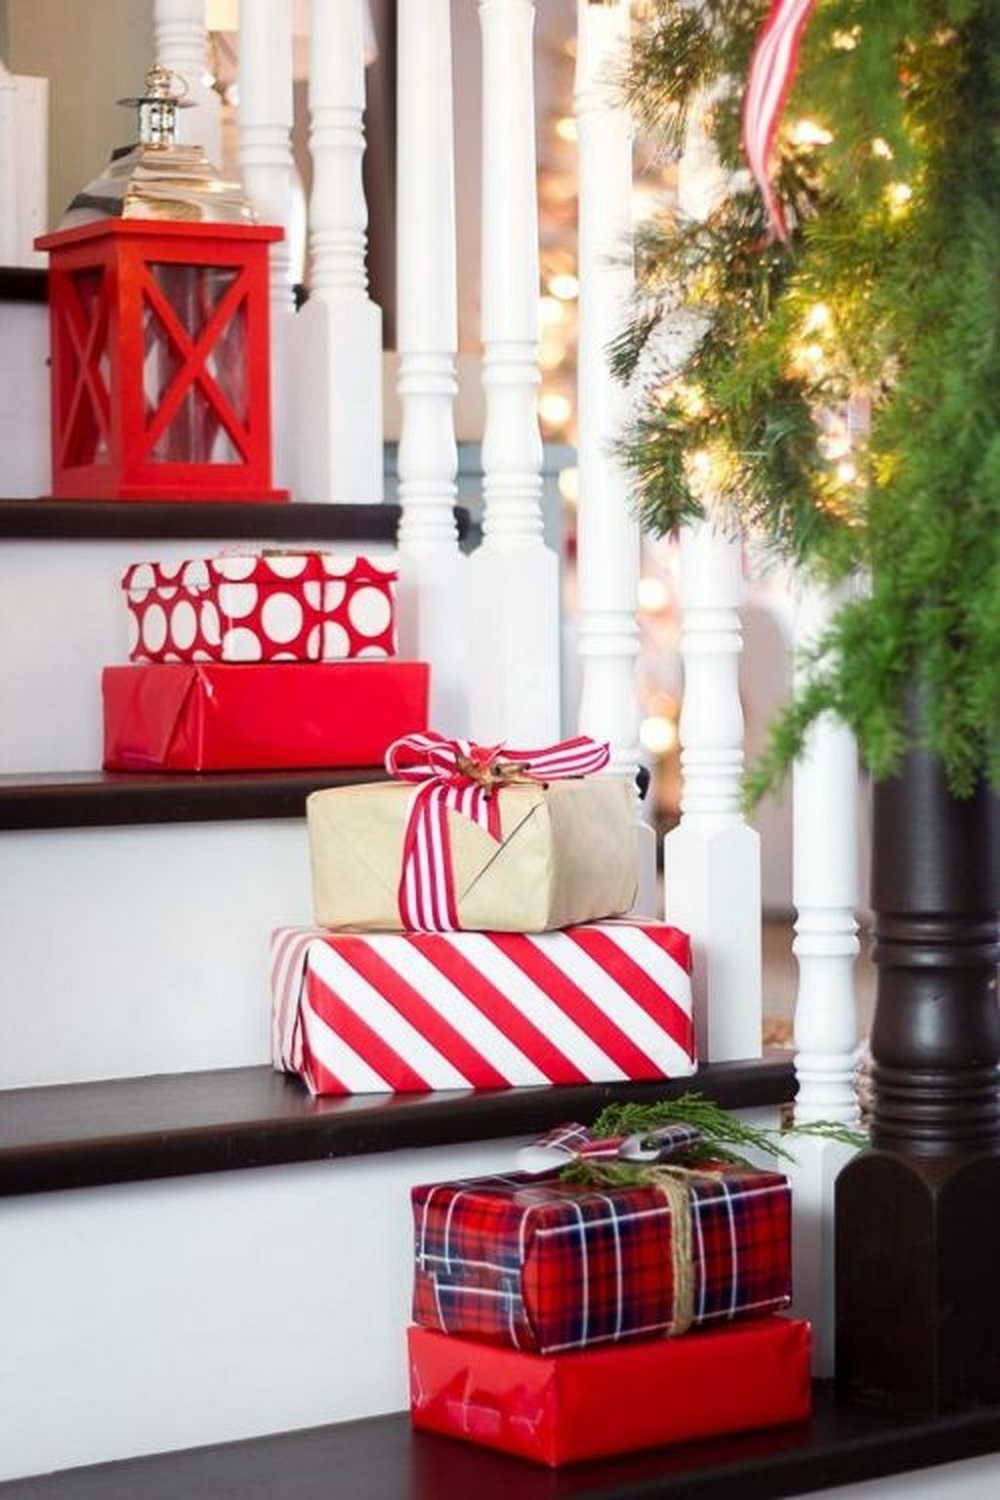 t3-127 Modern Christmas decoration ideas that are heartwarming